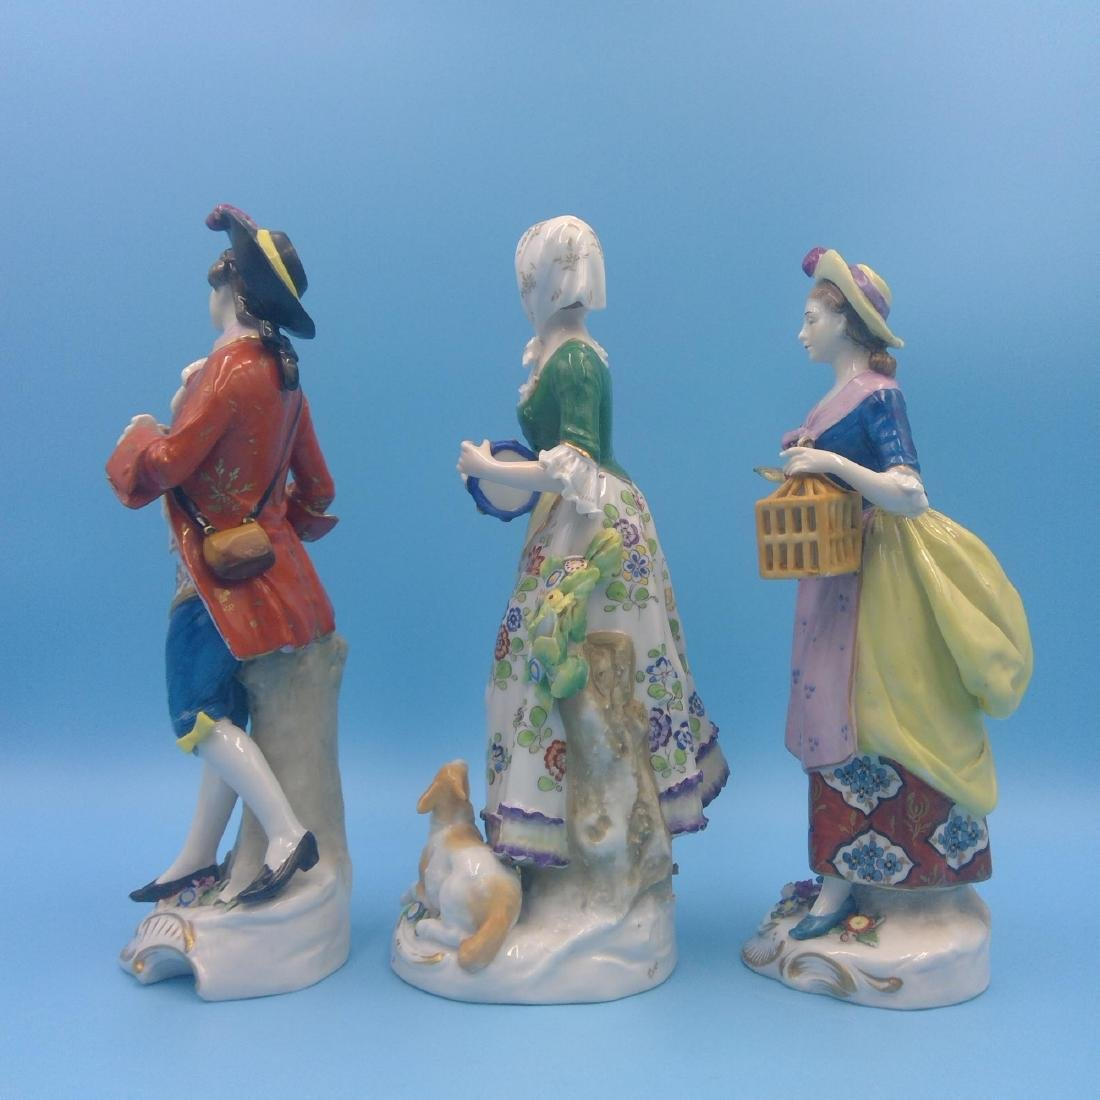 GROUP OF 3 CHELSEA 18thC ENGLISH PORCELAIN FIGURES - 2